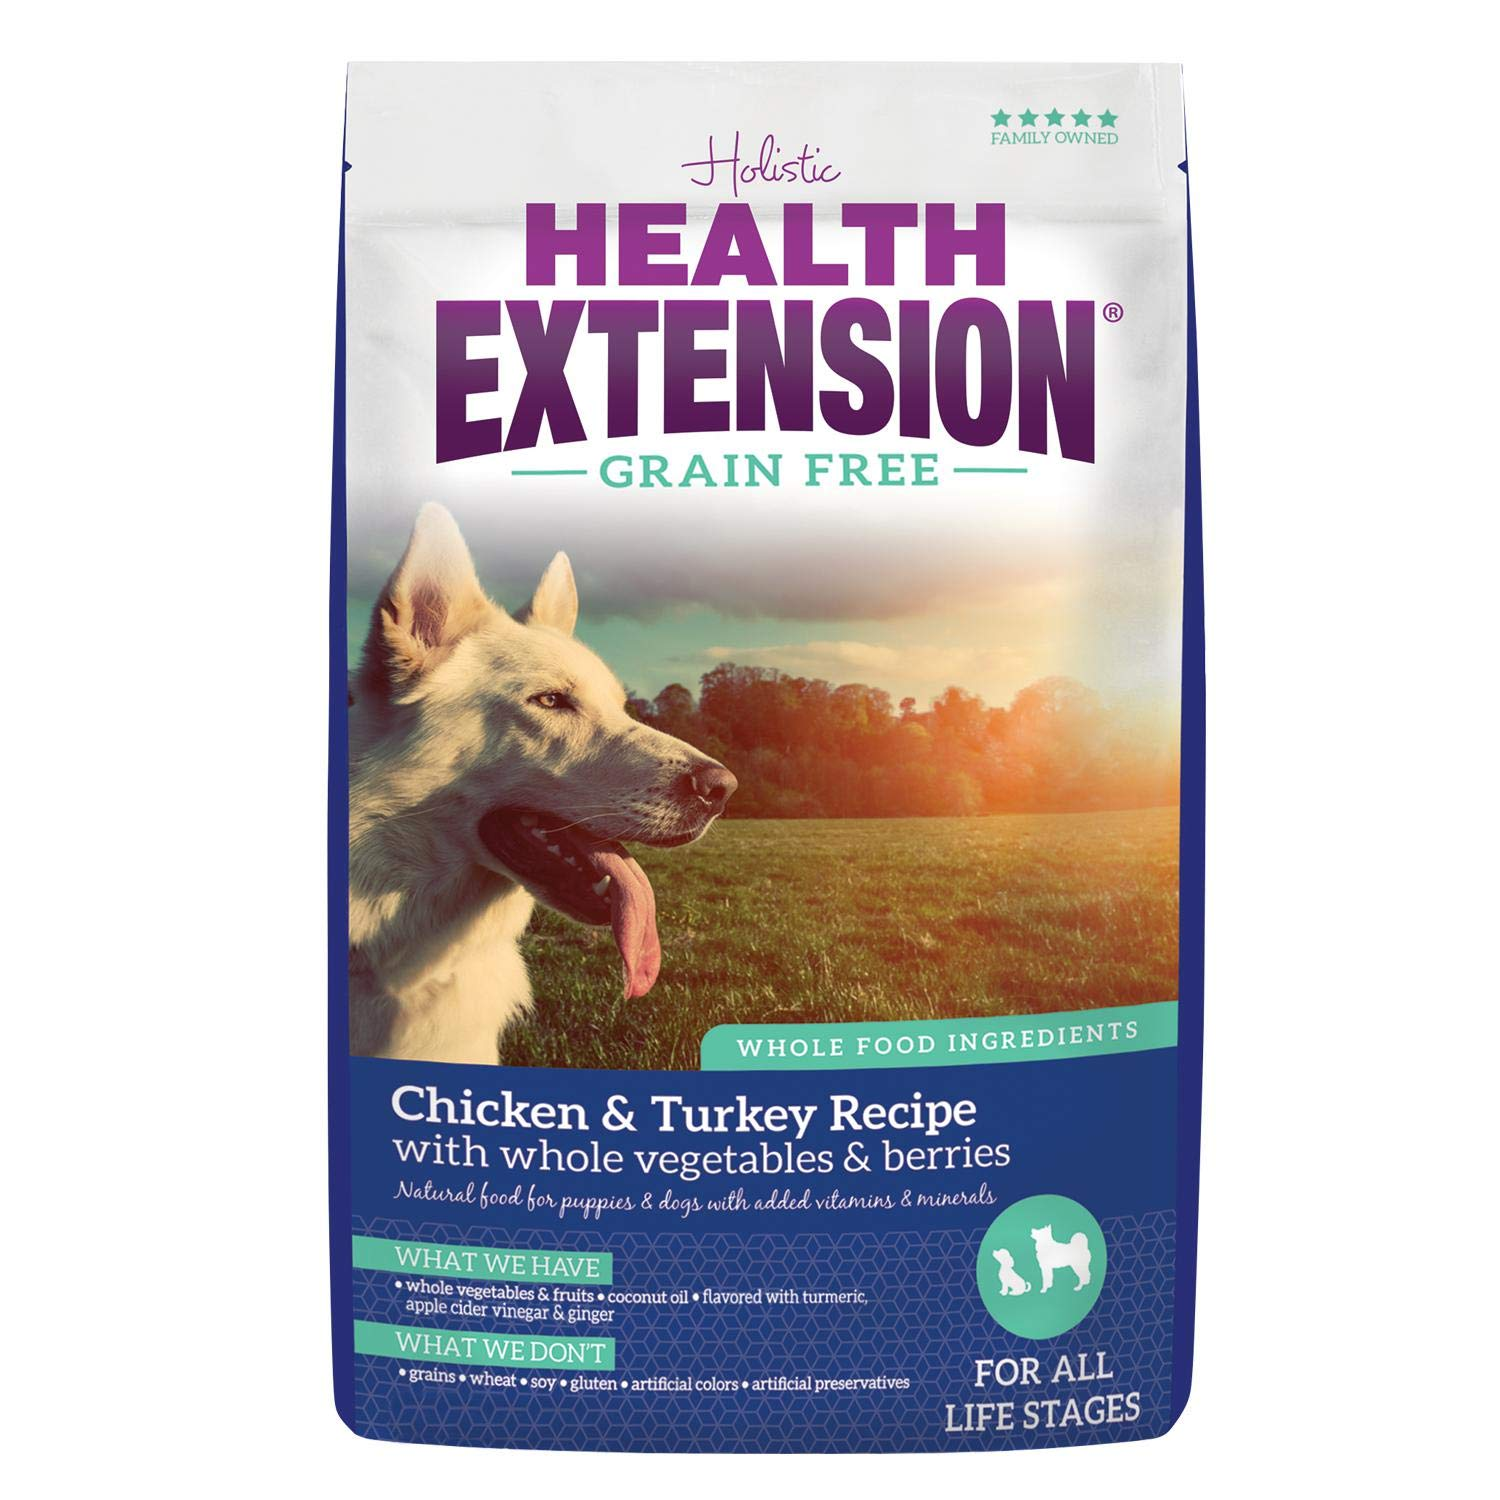 Health Extension Grain Free Chicken Turkey Recipe